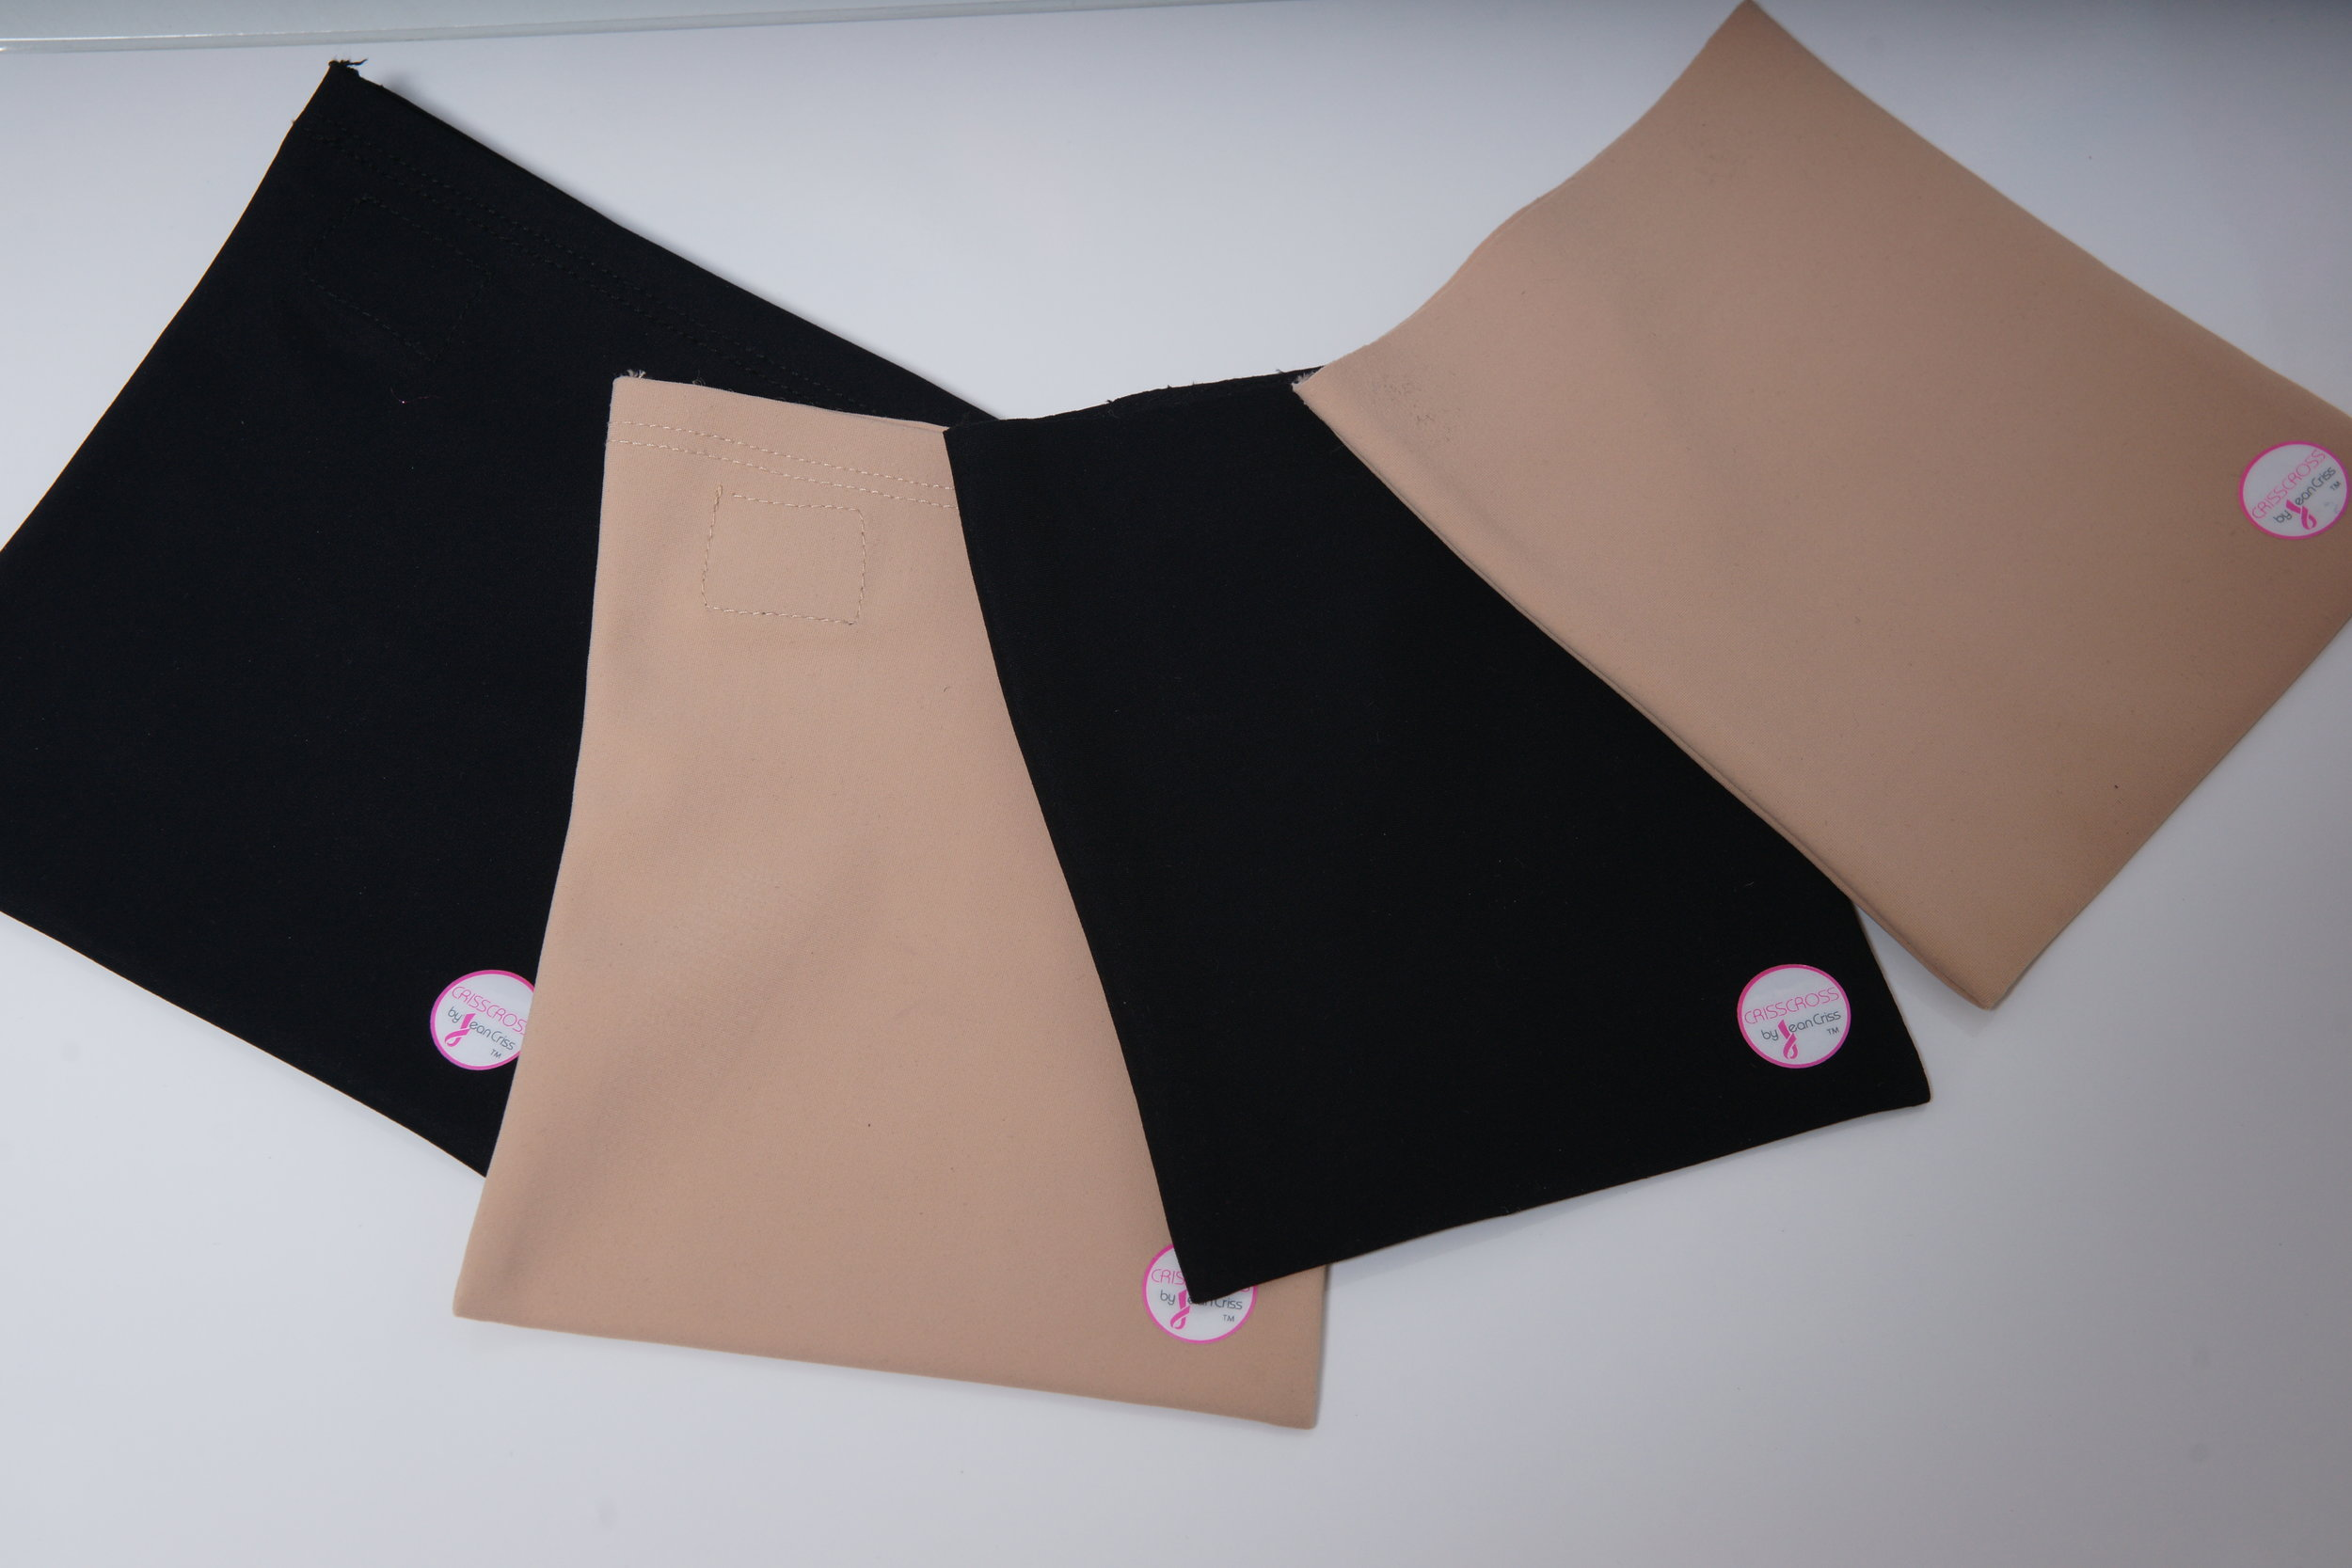 And don't forget to purchase your CRISSCROSS Pouch to look #FAB in your women's bra or men's vest ensembles!